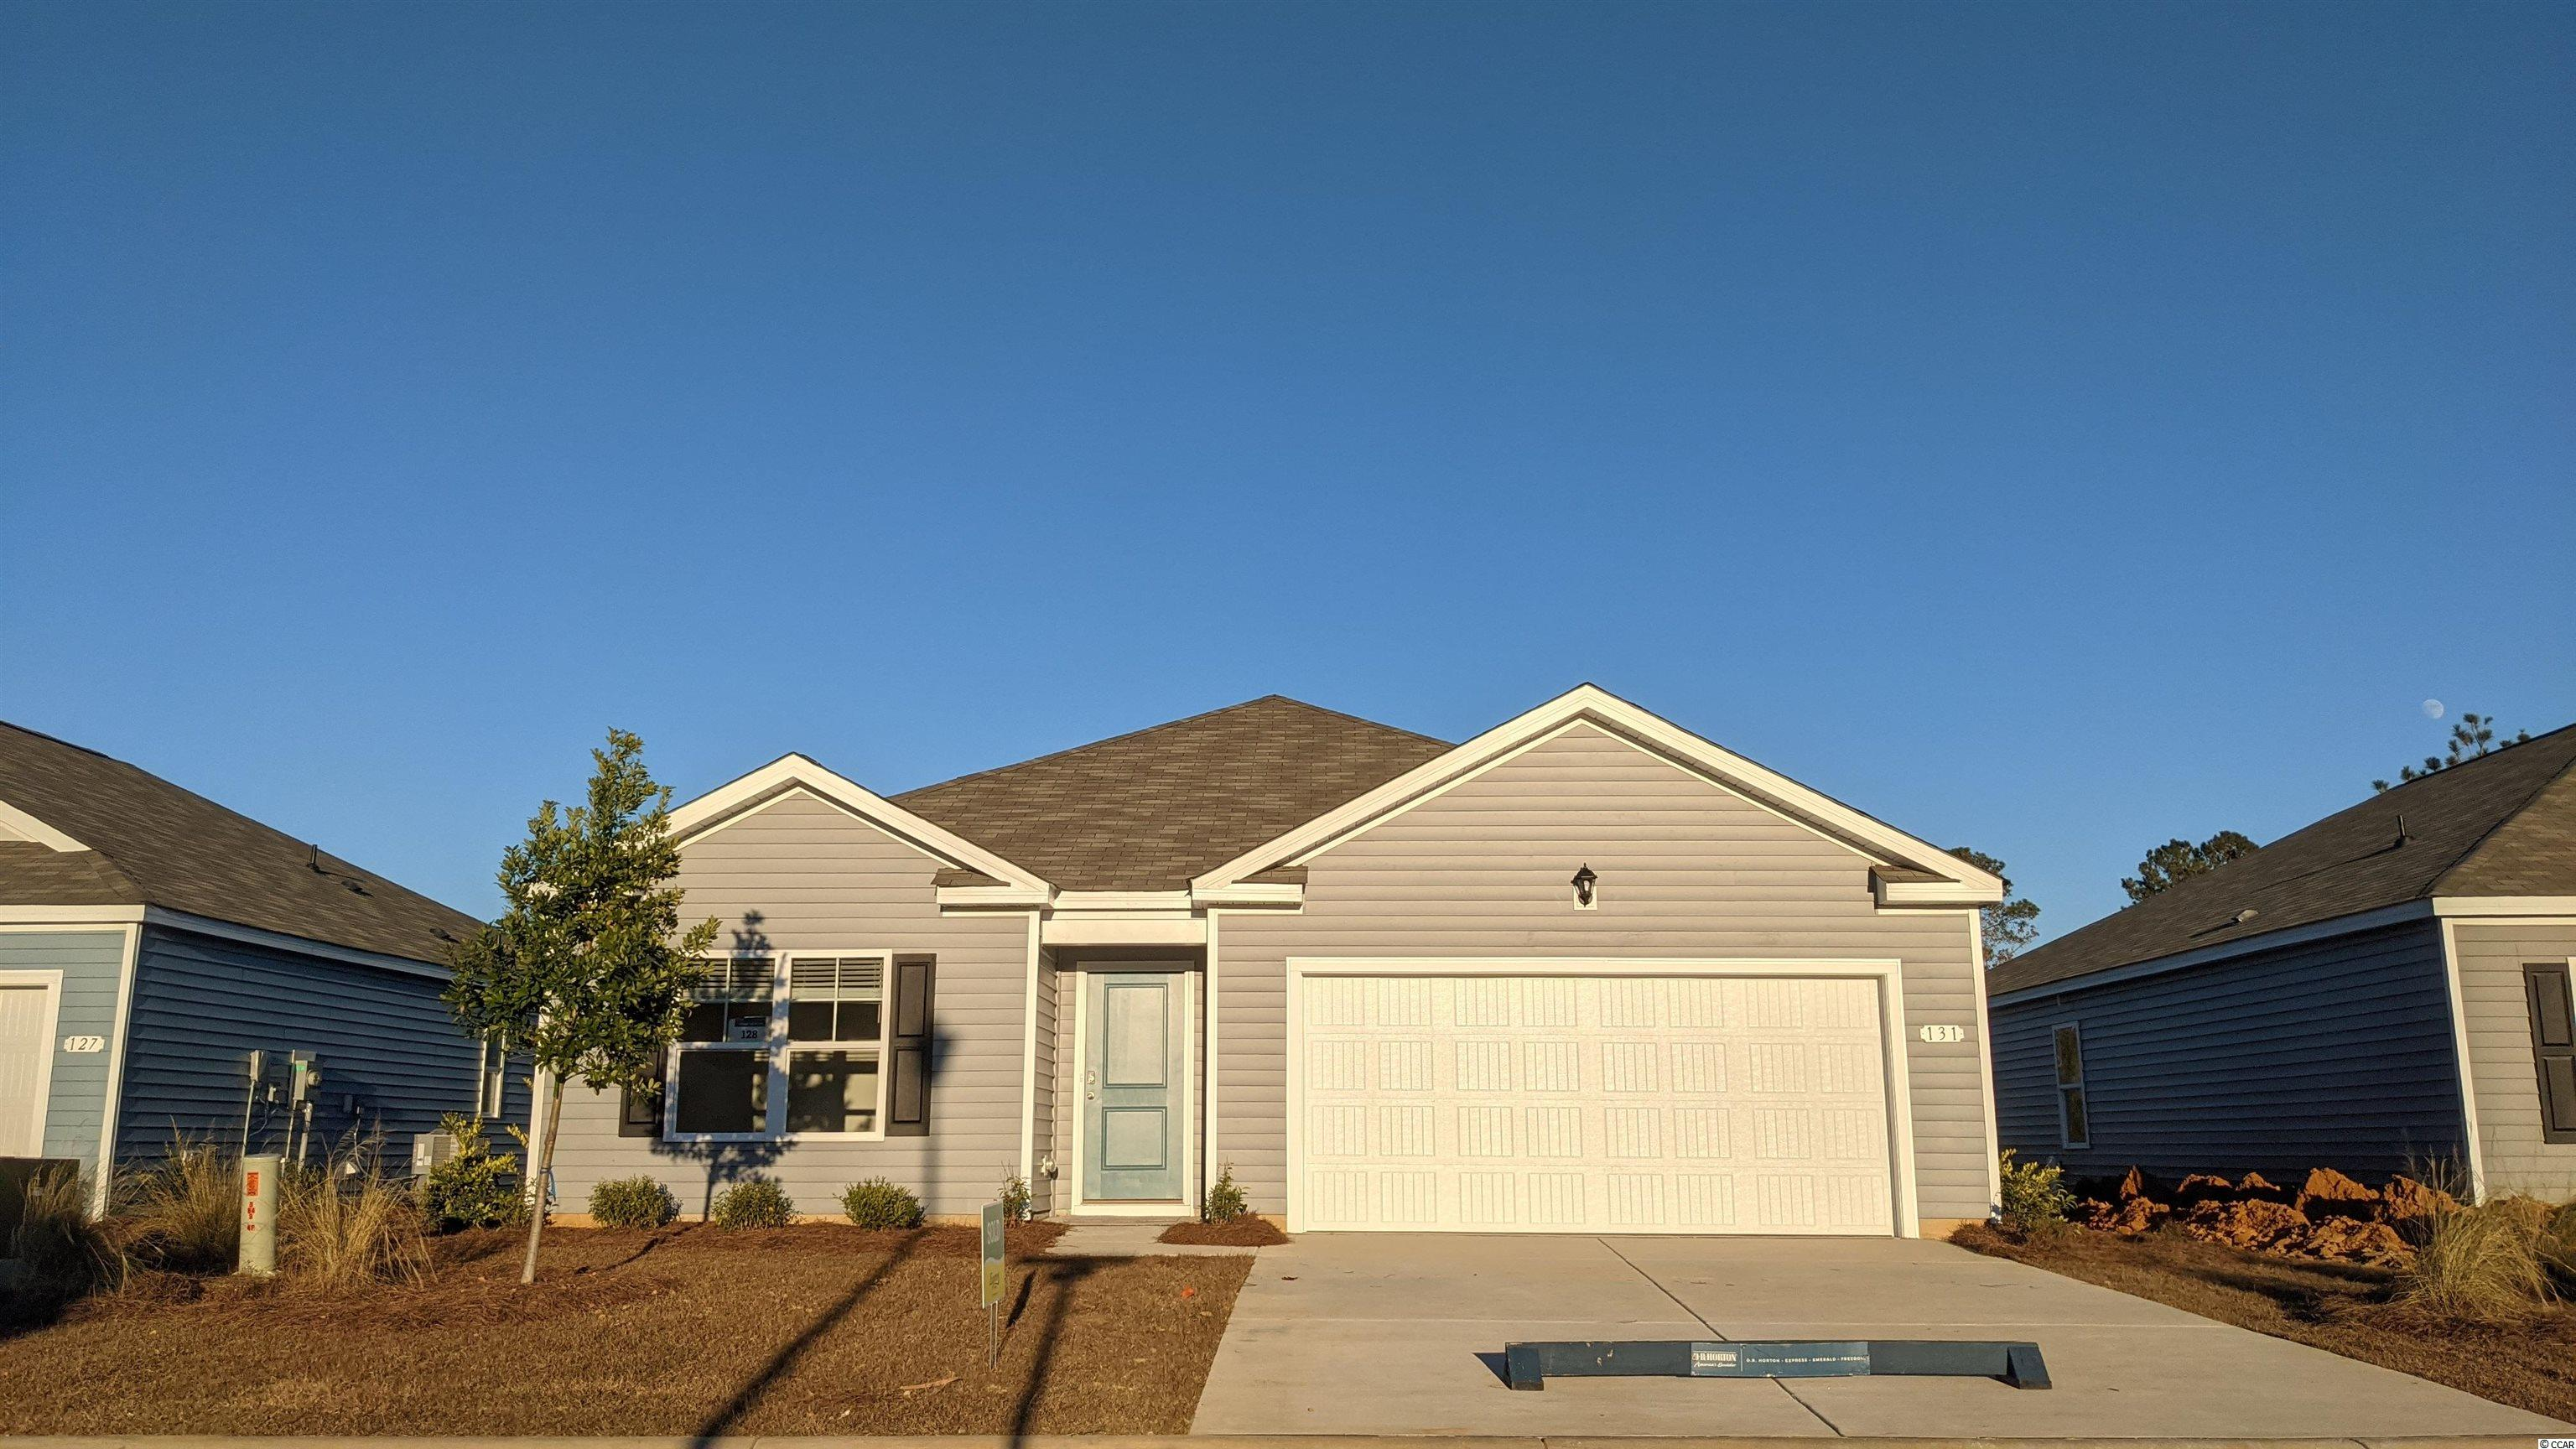 """Brand new community at the edge of Conway/Aynor.   Our Cali plan is a thoughtfully designed one level home with a beautiful, open concept living area that is perfect for entertaining. The kitchen features granite countertops, an oversized island, 36"""" painted cabinetry, a walk-in pantry, and stainless Whirlpool appliances including a side-by-side refrigerator. The large owner's suite is tucked away at the back of the home, separated from the other bedrooms, with a walk-in closet and spacious en suite bath with a double vanity, 5' shower, and separate linen closet. Low maintenance laminate flooring in the main areas gives the look of wood with easy care and cleanup! Spacious covered rear porch adds additional outdoor living space. 2 inch faux wood blinds included on all standard windows.  This is America's Smart Home! Each of our homes comes with an industry leading smart home package that will allow you to control the thermostat, front door light and lock, and video doorbell from your smartphone or with voice commands to Alexa. *Photos are of a similar Cali home.  (Home and community information, including pricing, included features, terms, availability and amenities, are subject to change prior to sale at any time without notice or obligation. Square footages are approximate. Pictures, photographs, colors, features, and sizes are for illustration purposes only and will vary from the homes as built. Equal housing opportunity builder.)"""